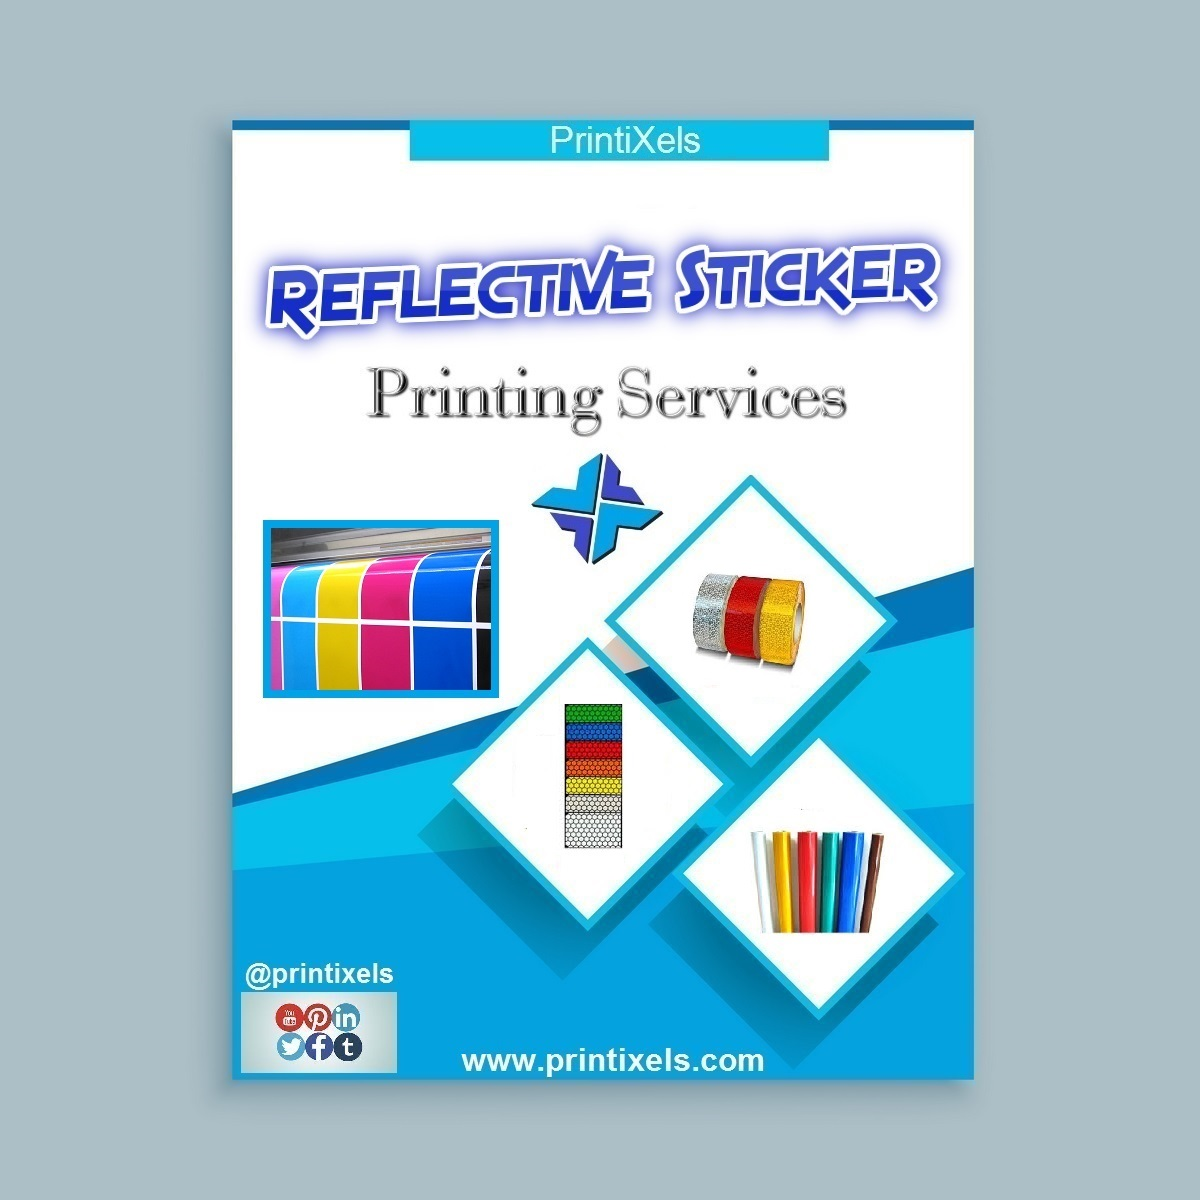 Reflective Sticker Printing Services